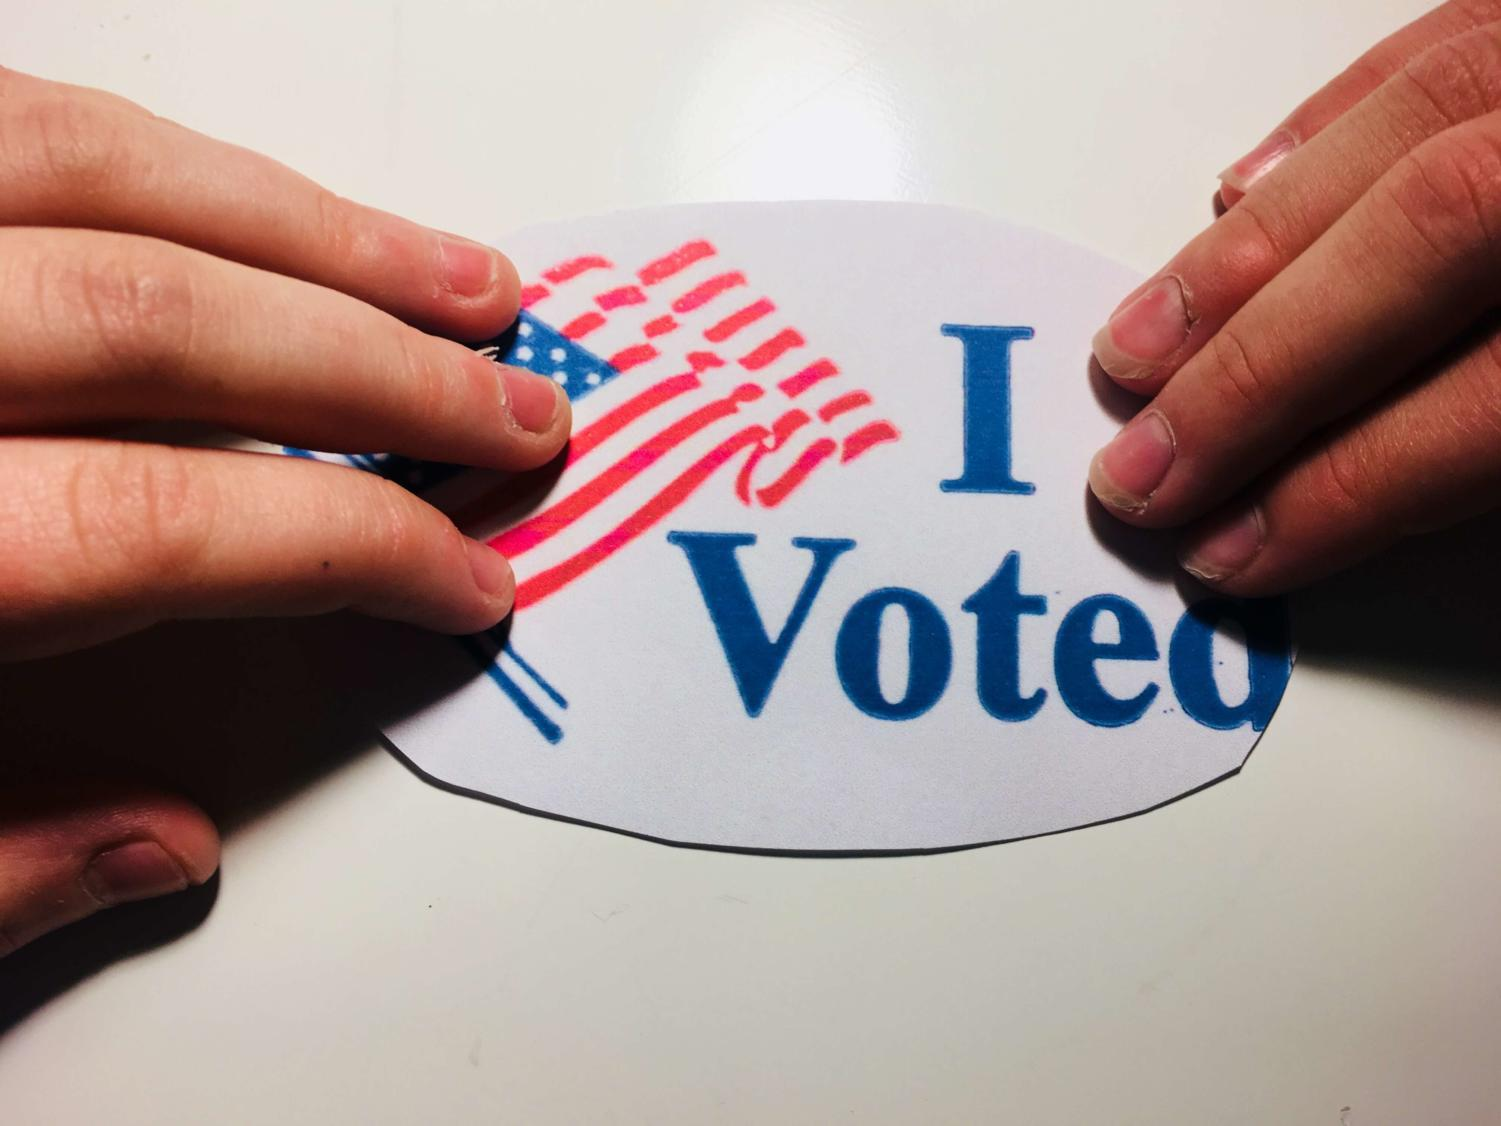 Voters received a sticker after casting their votes for during the Nov. 7 elections.